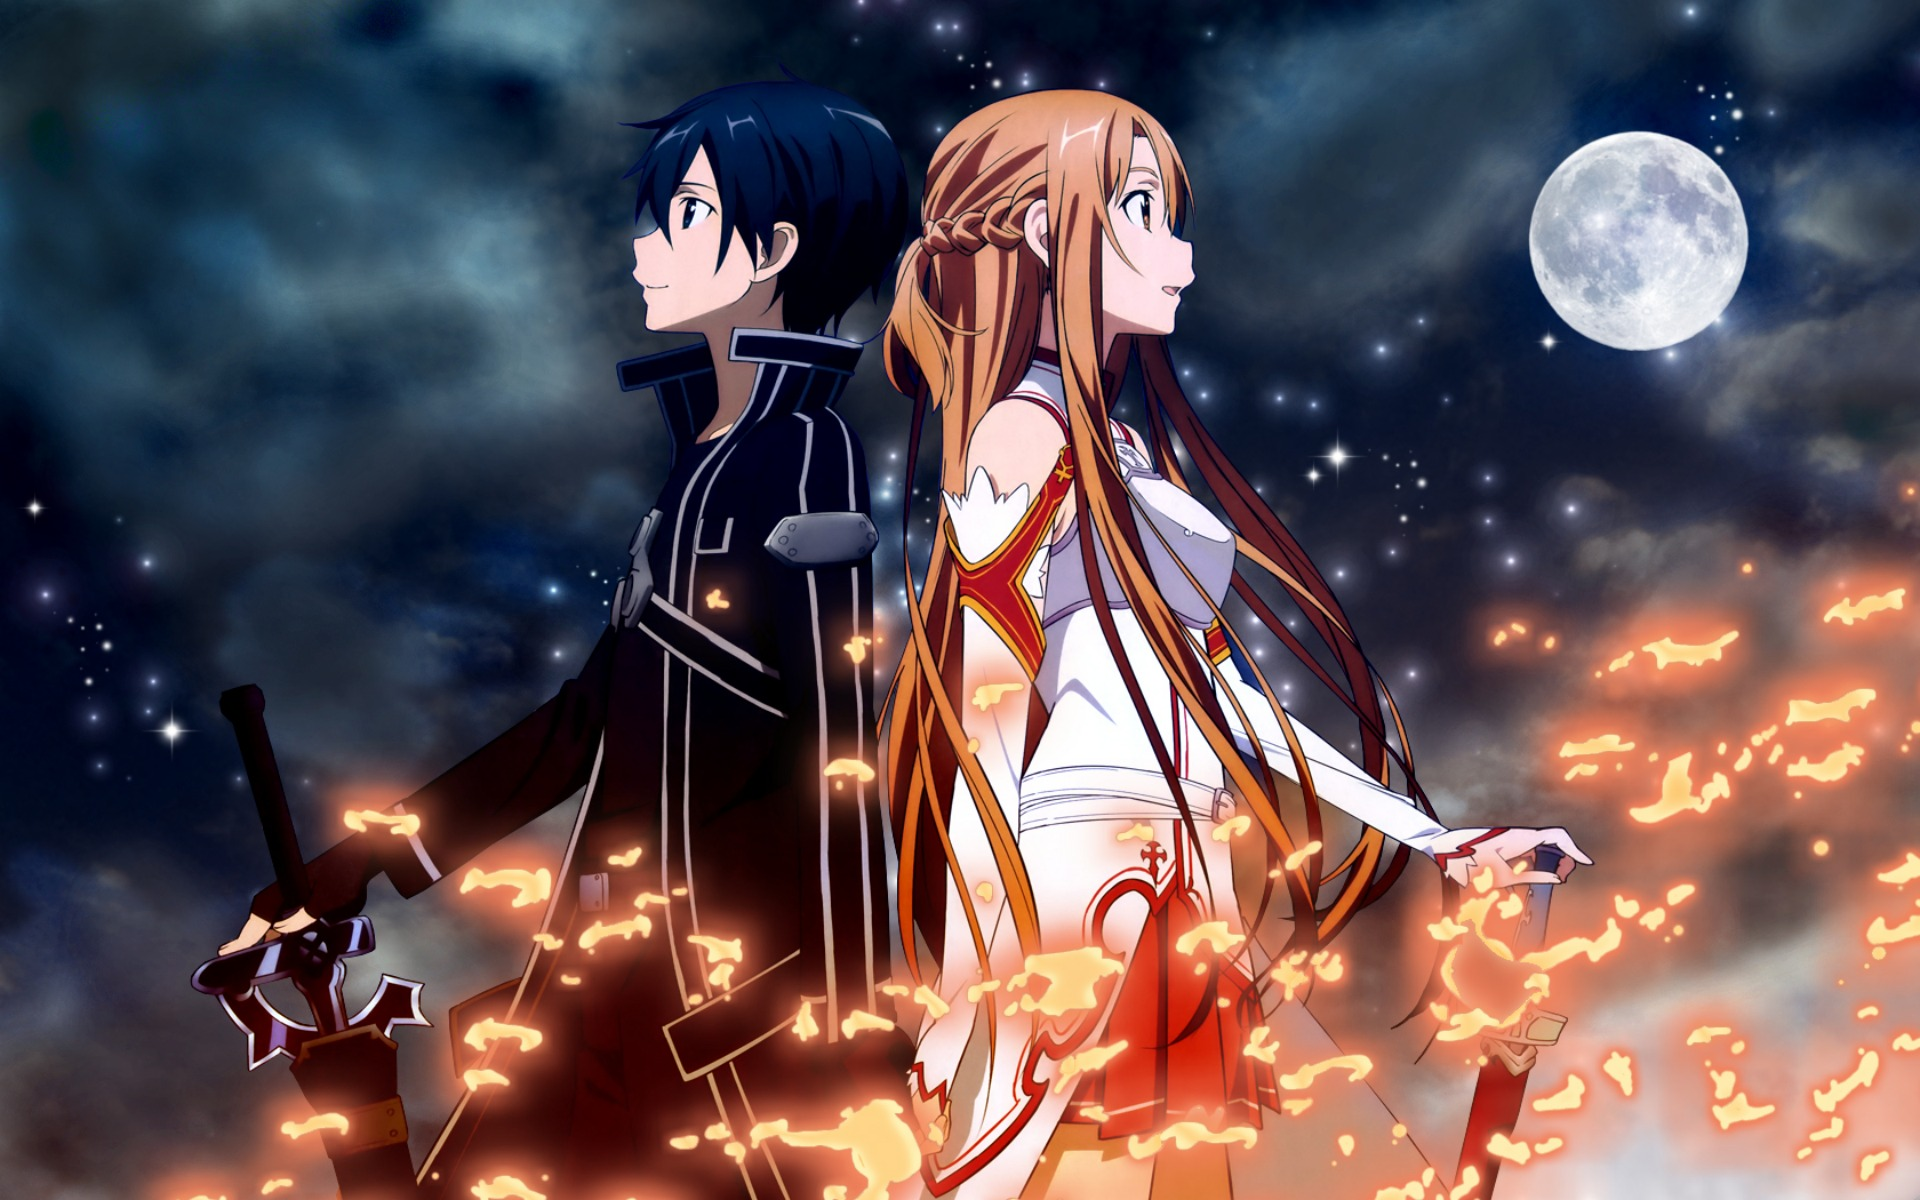 Sword Art Online images SAO HD wallpaper and background photos ...